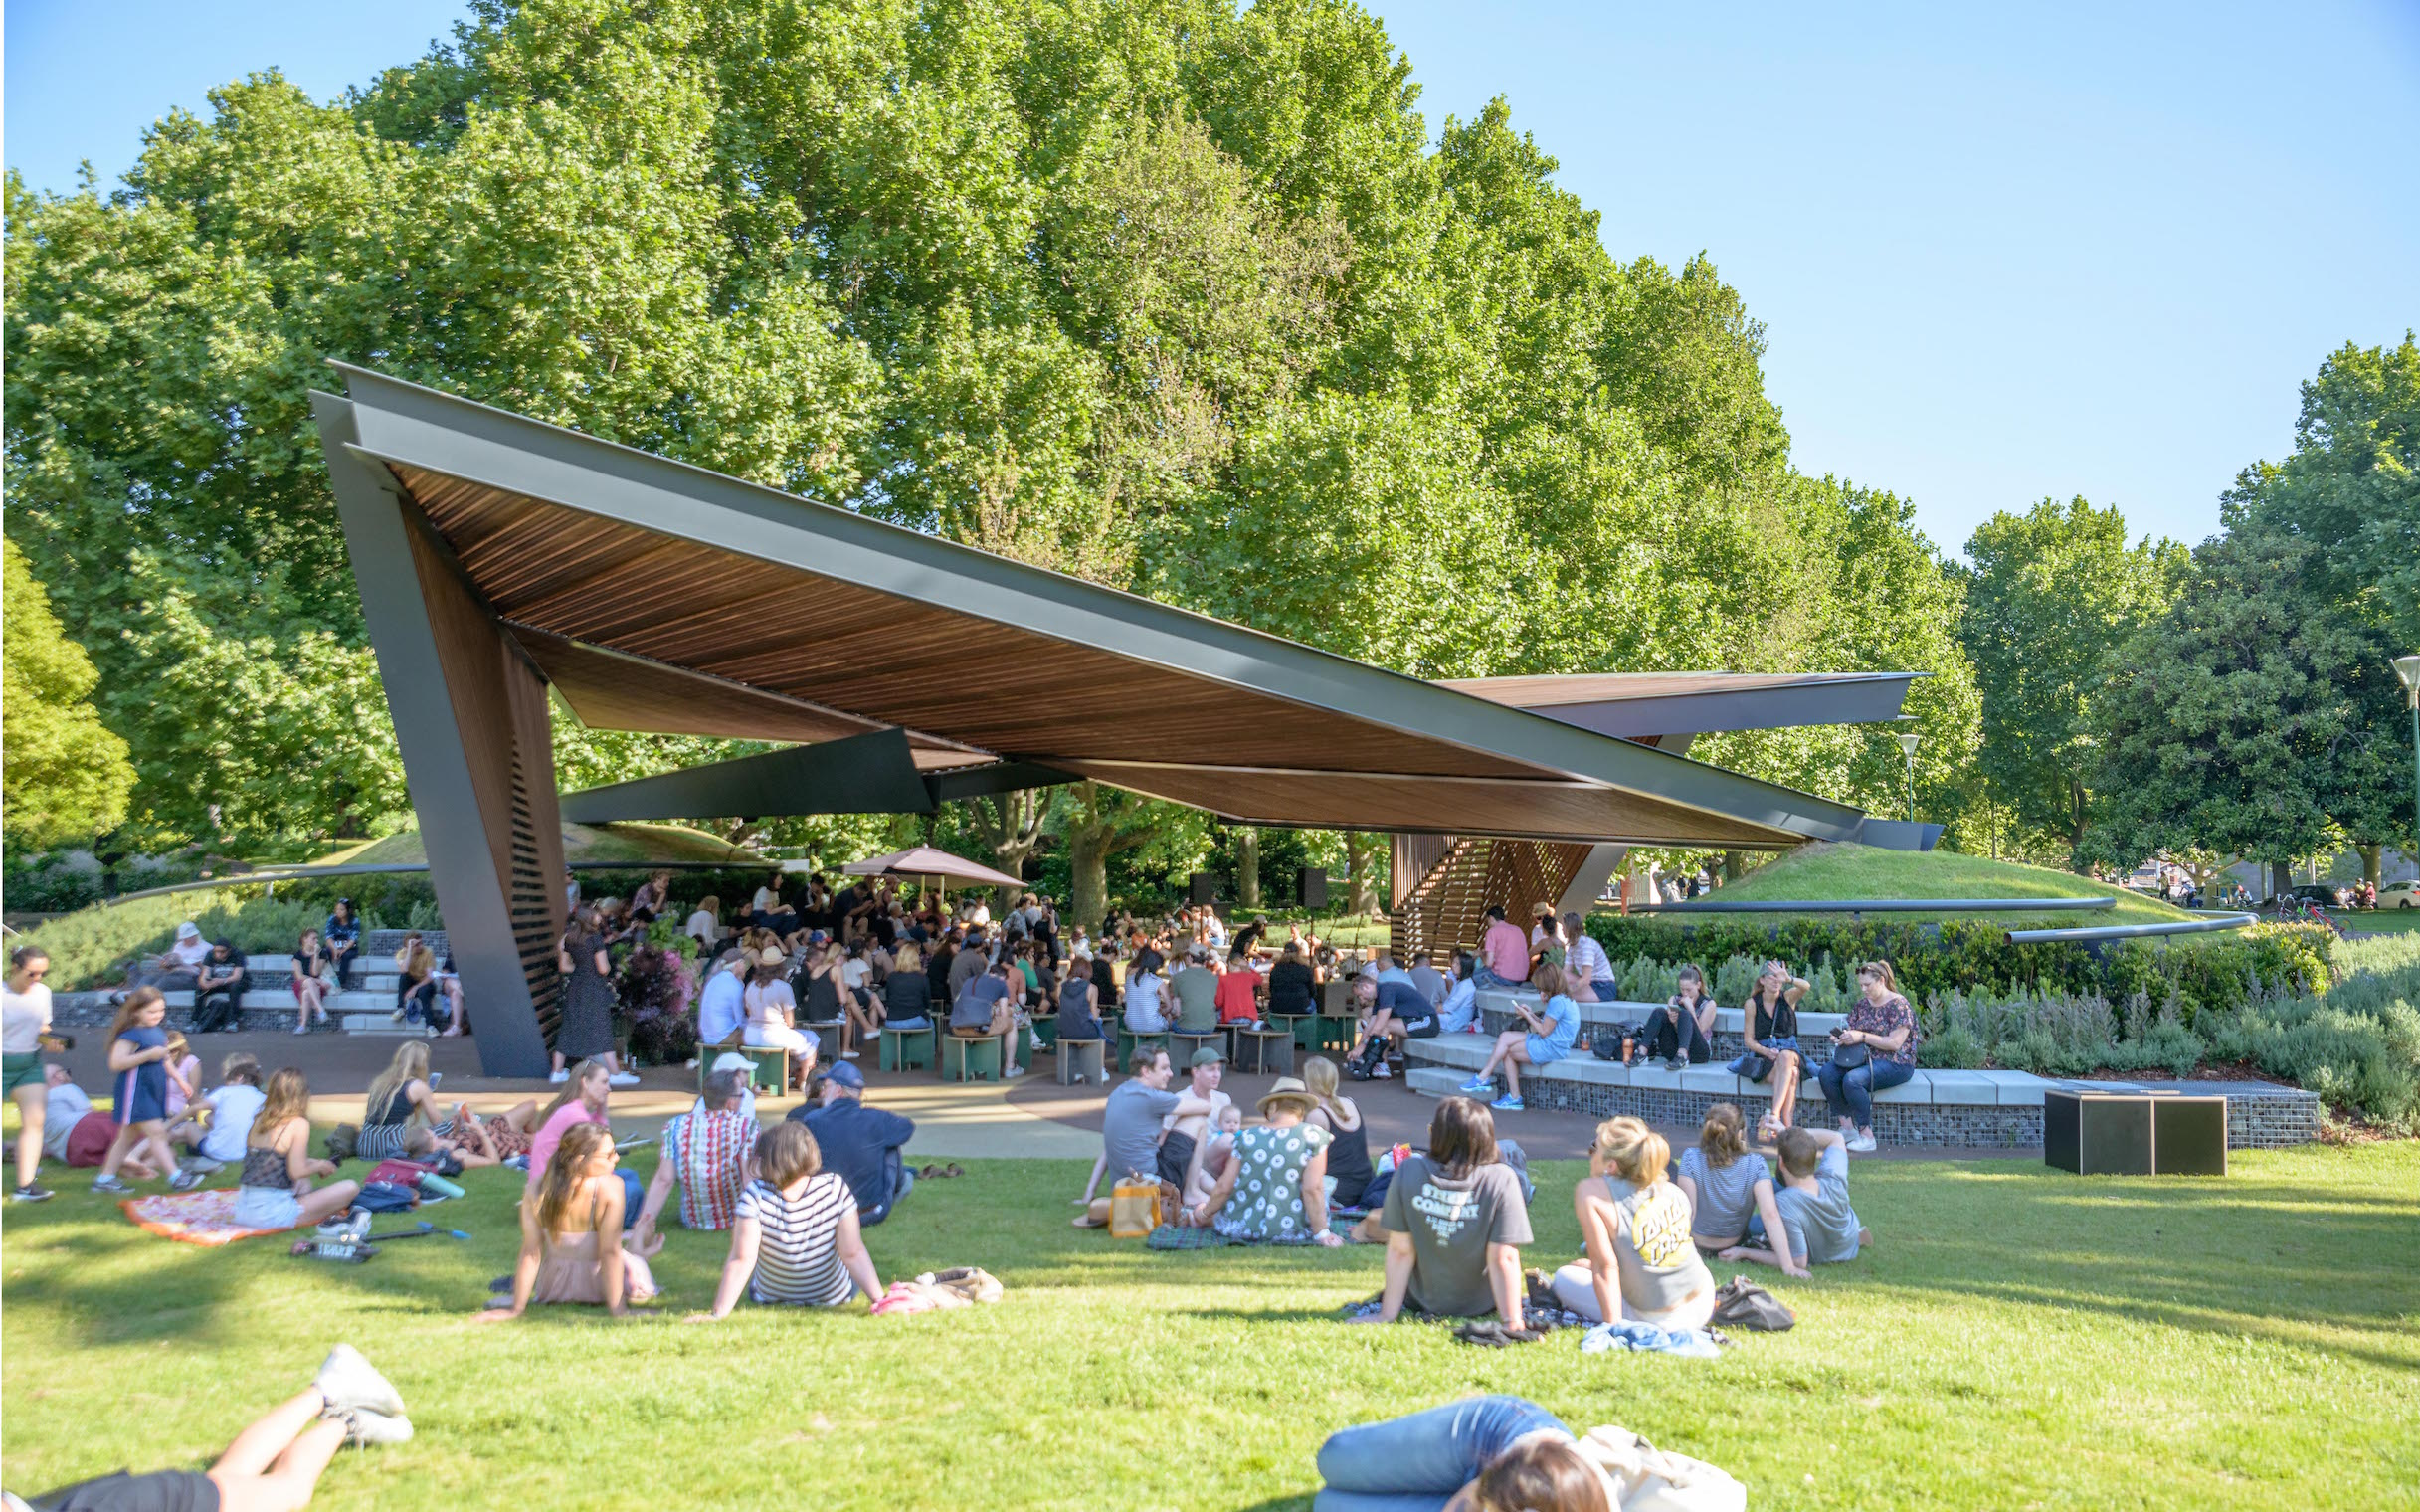 Hot town! Your top ten free events for summer